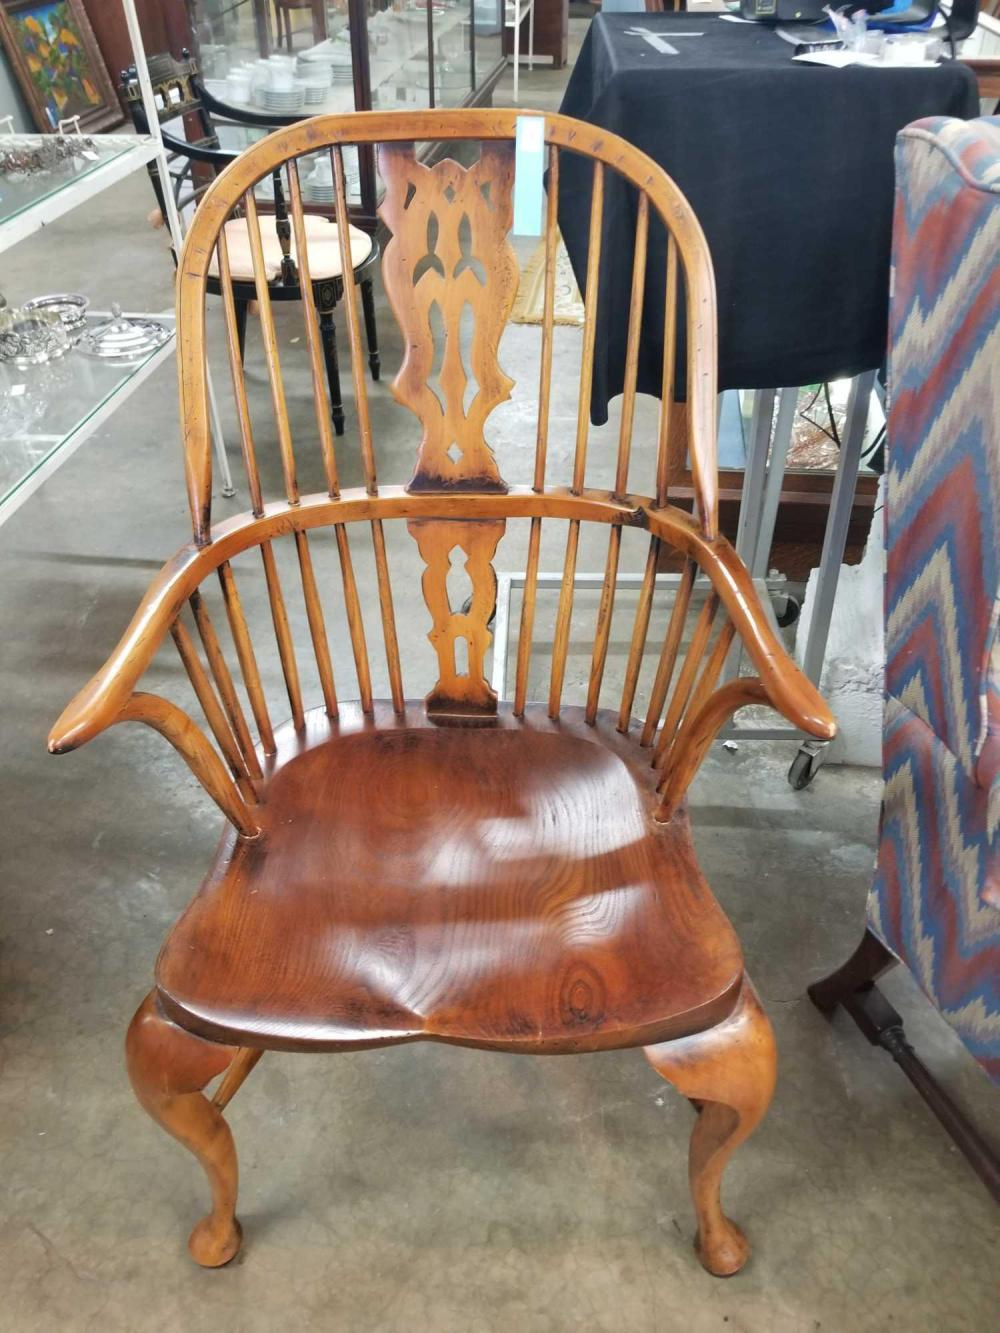 QUEEN ANNE BENTWOOD SPINDLE BACK CHAIR